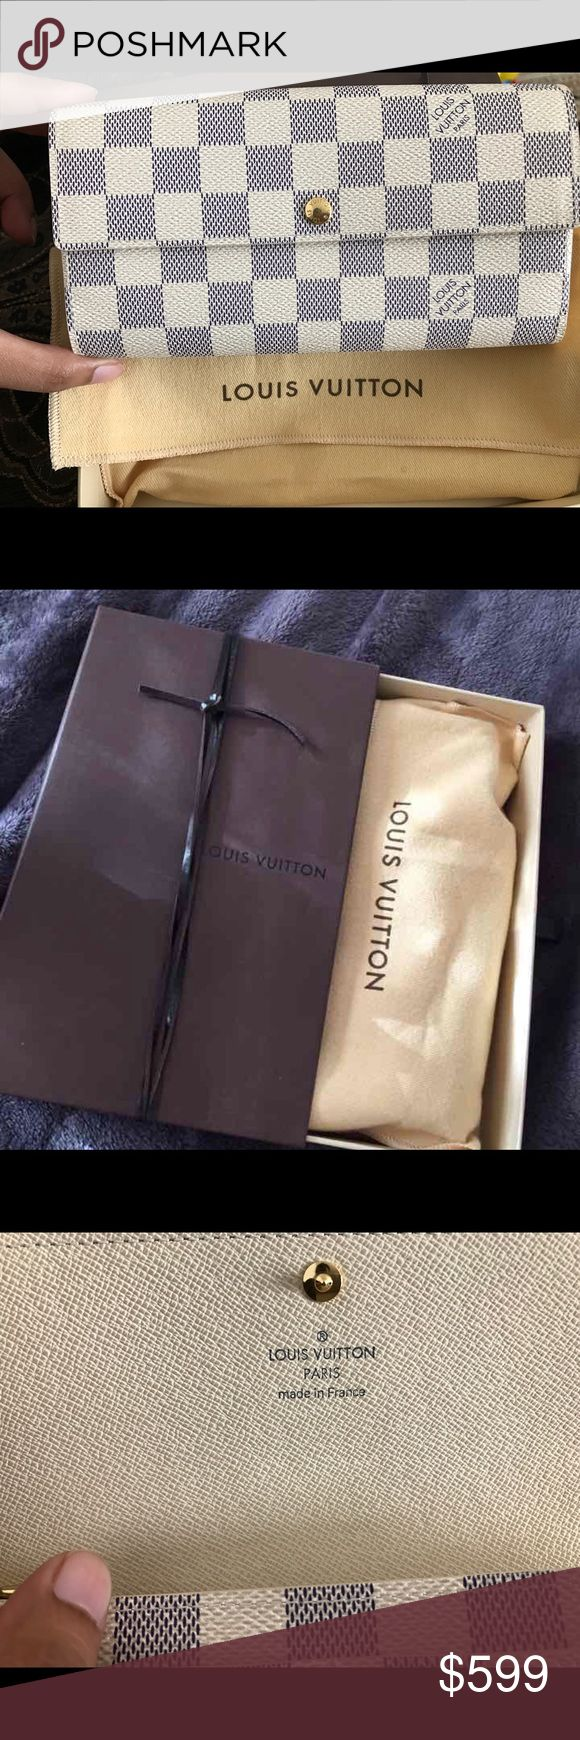 Sarah wallet Authentic Excellent condition like new just used only a week its like brand new paid over $800 Louis Vuitton Bags Wallets